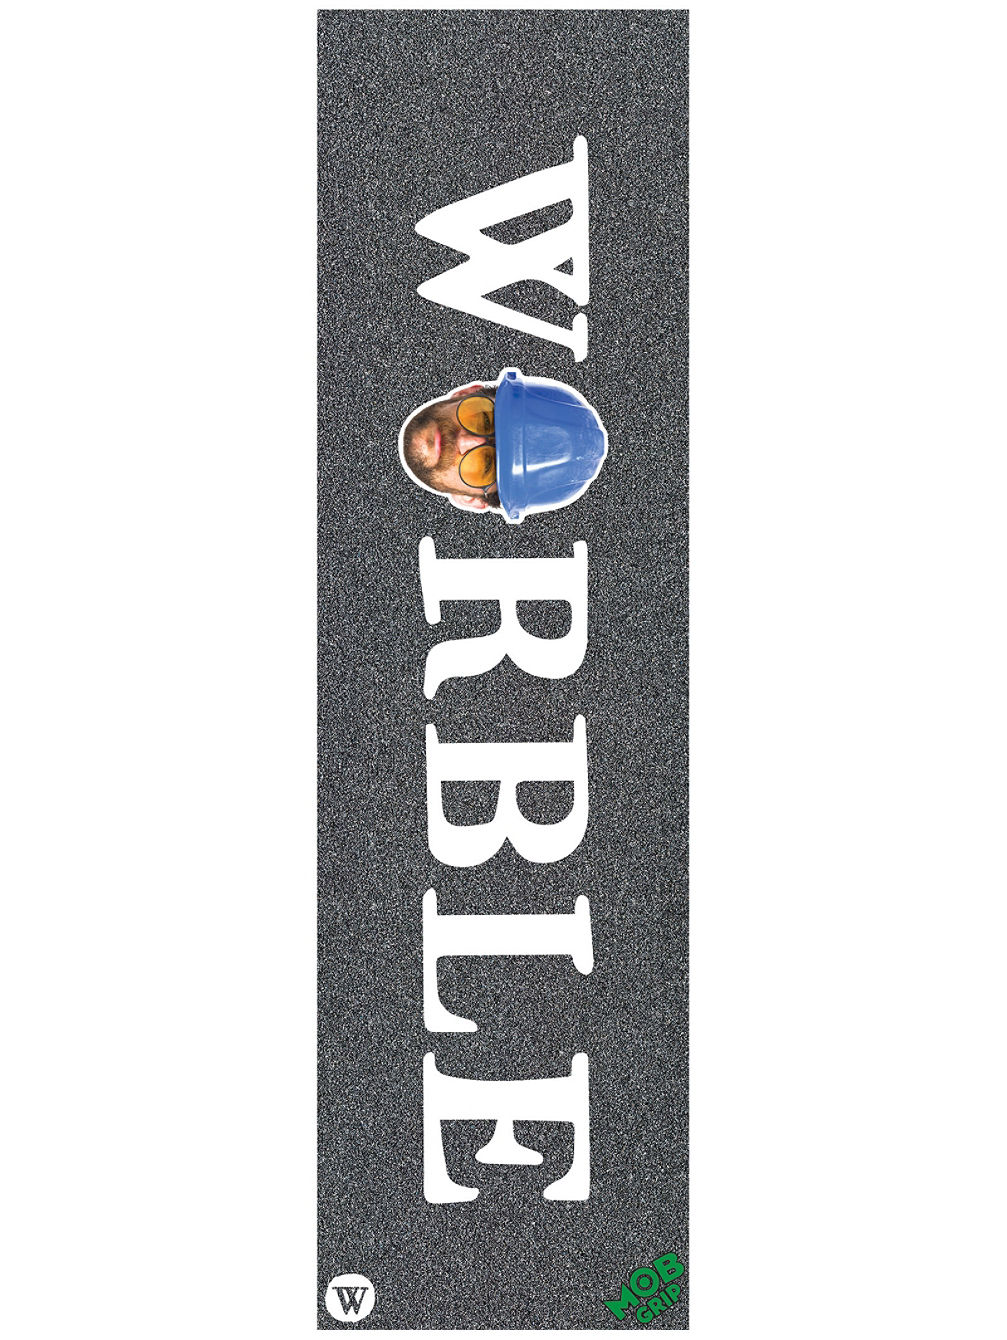 "The Worble 9.0"" Grip Tape"